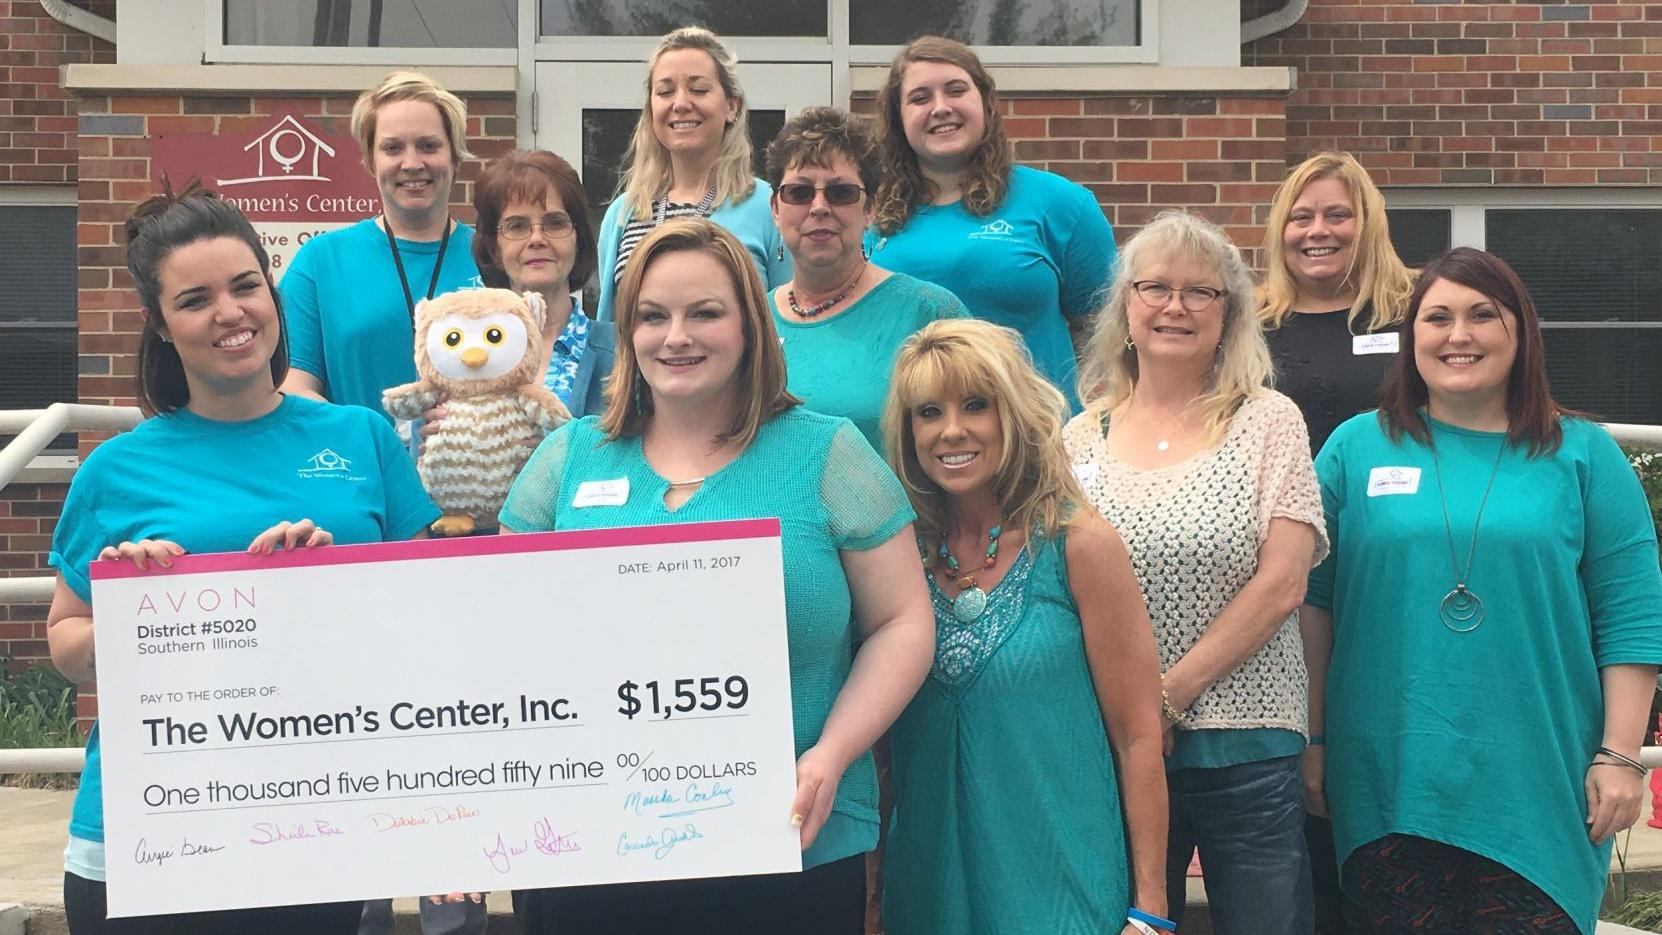 Local Avon representatives partner to raise funds for The Women's Center